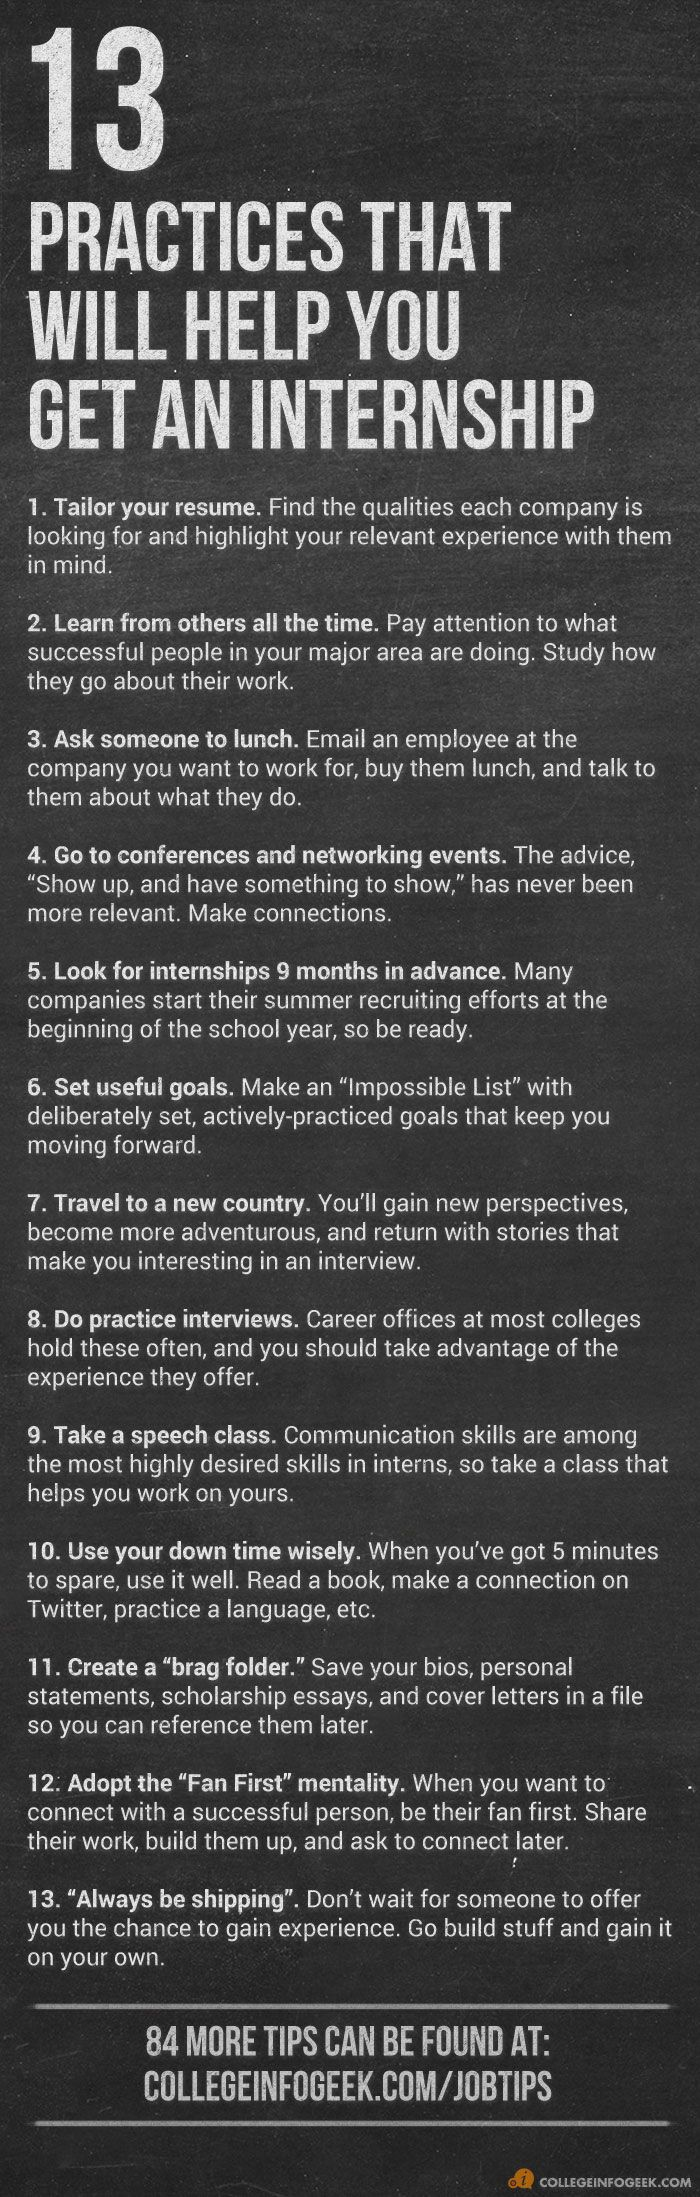 17 best images about internship tips the intern diaries on 13 tips that will help your college internship search 84 more · internship adviceinternship searchinternship opportunitieshow to get